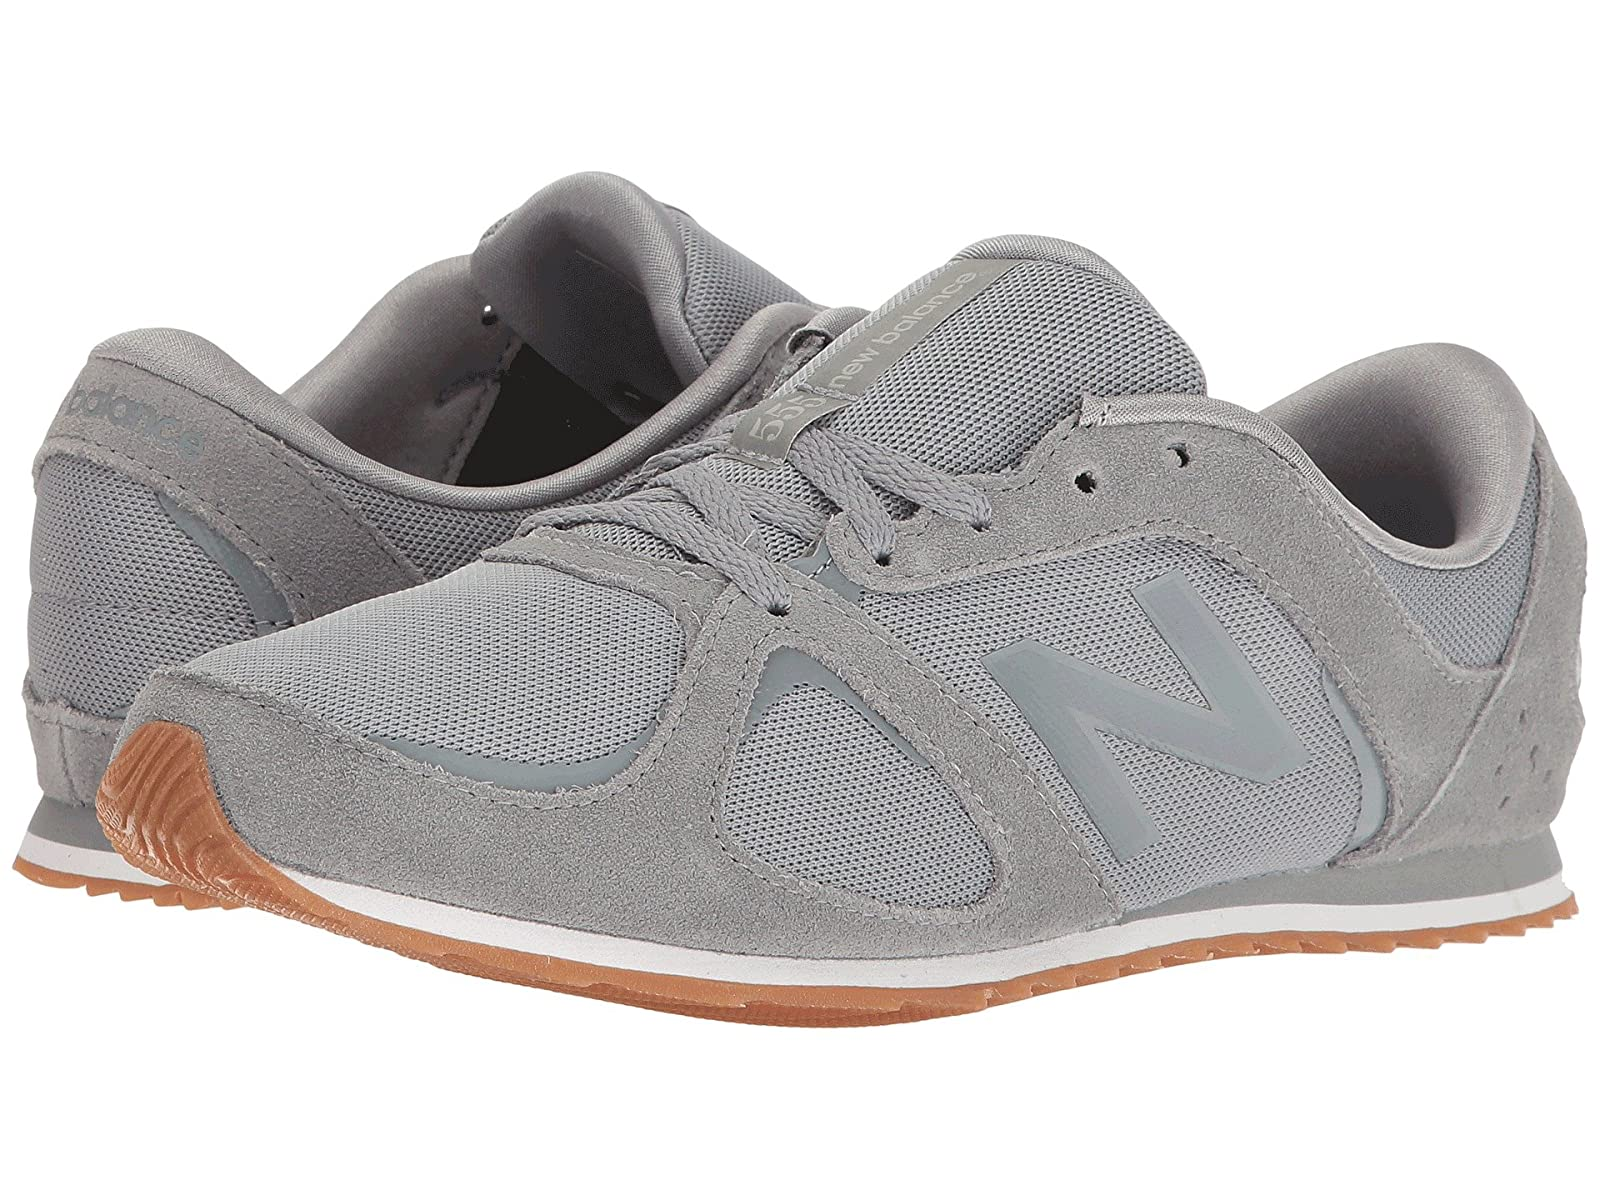 New Balance L555 - FlipduoCheap and distinctive eye-catching shoes